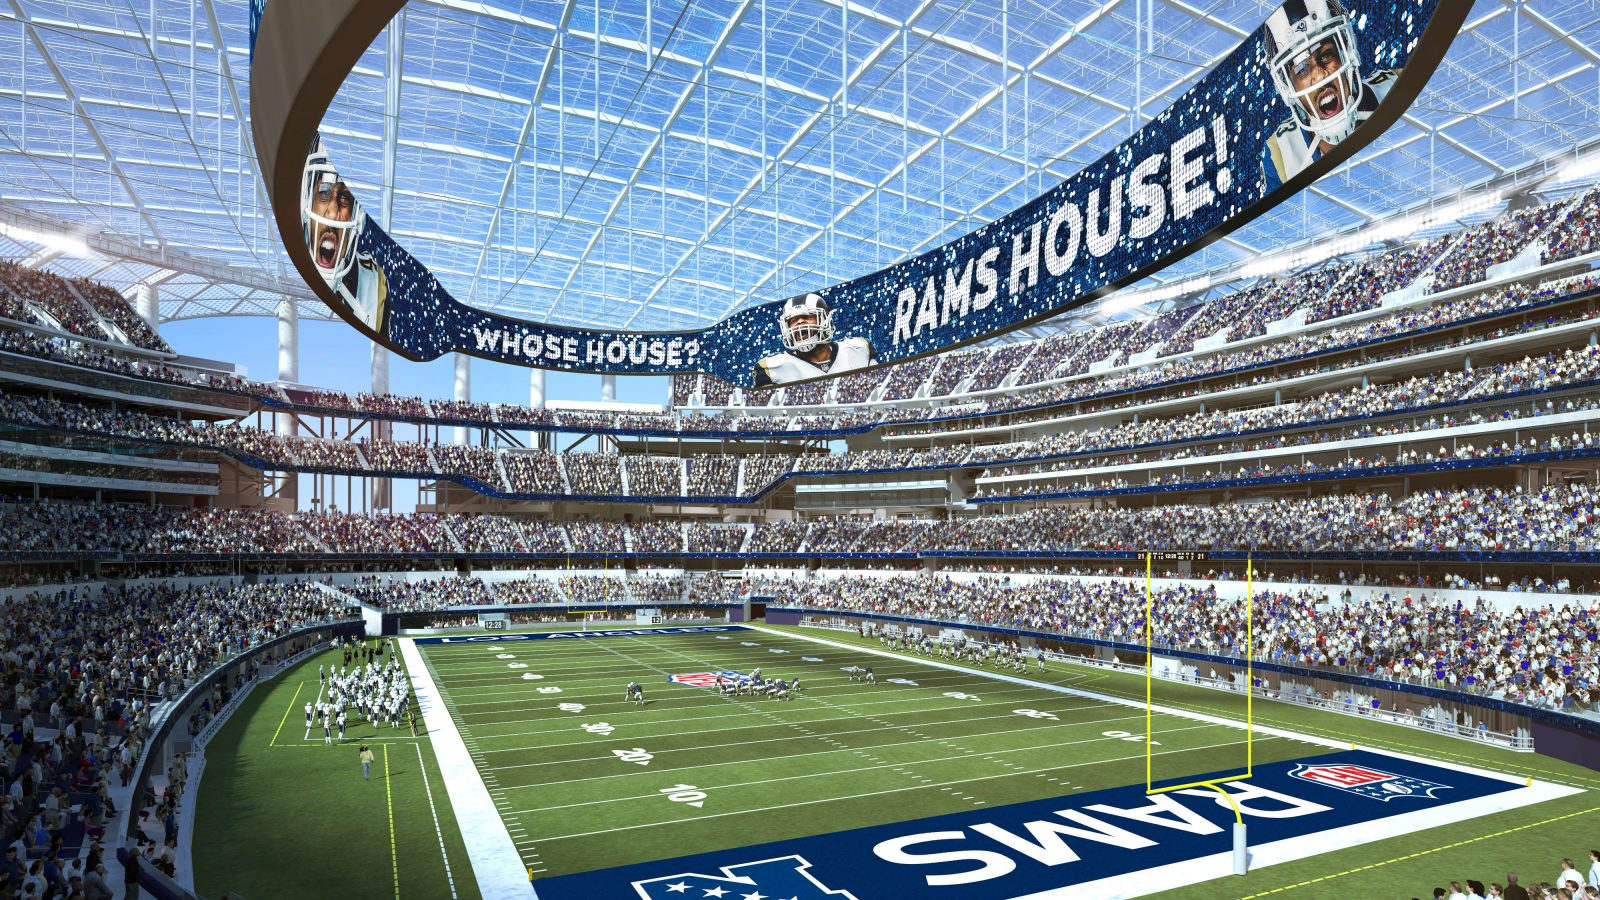 How the new SoFi stadium in LA embodies the future of live sports and entertainment